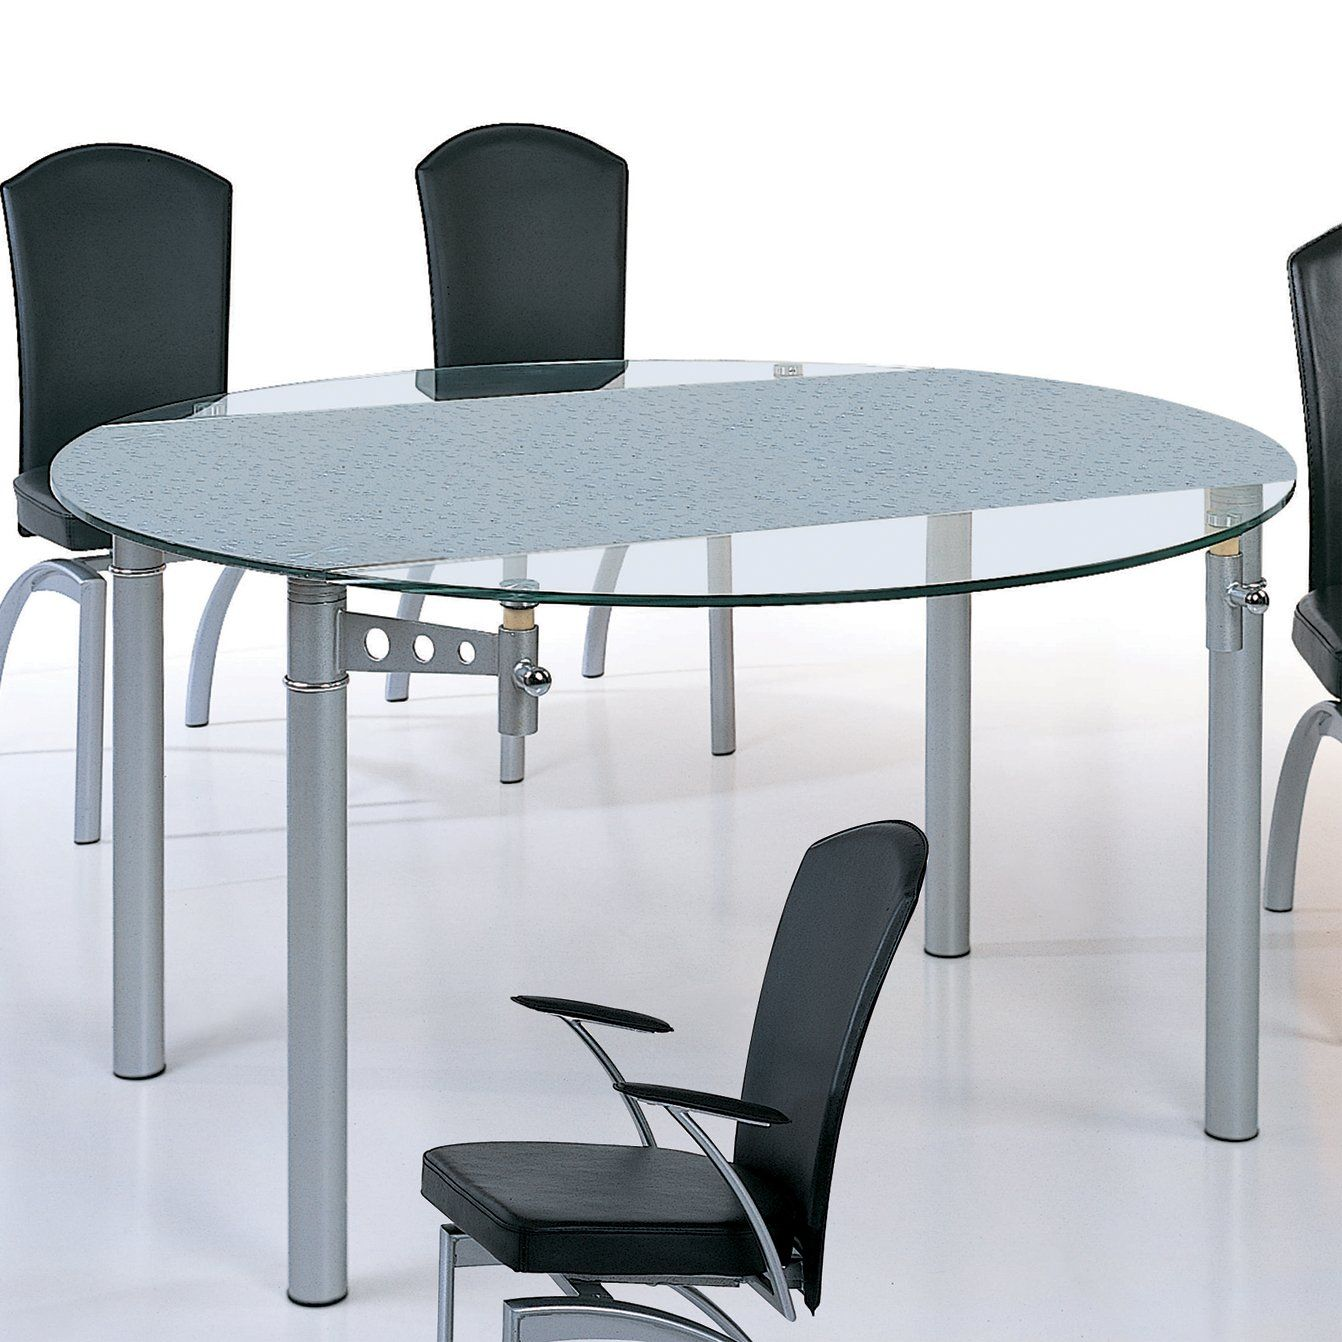 Raindrop Illusions Dining Table by Beverly Hills Furniture | Dining ...